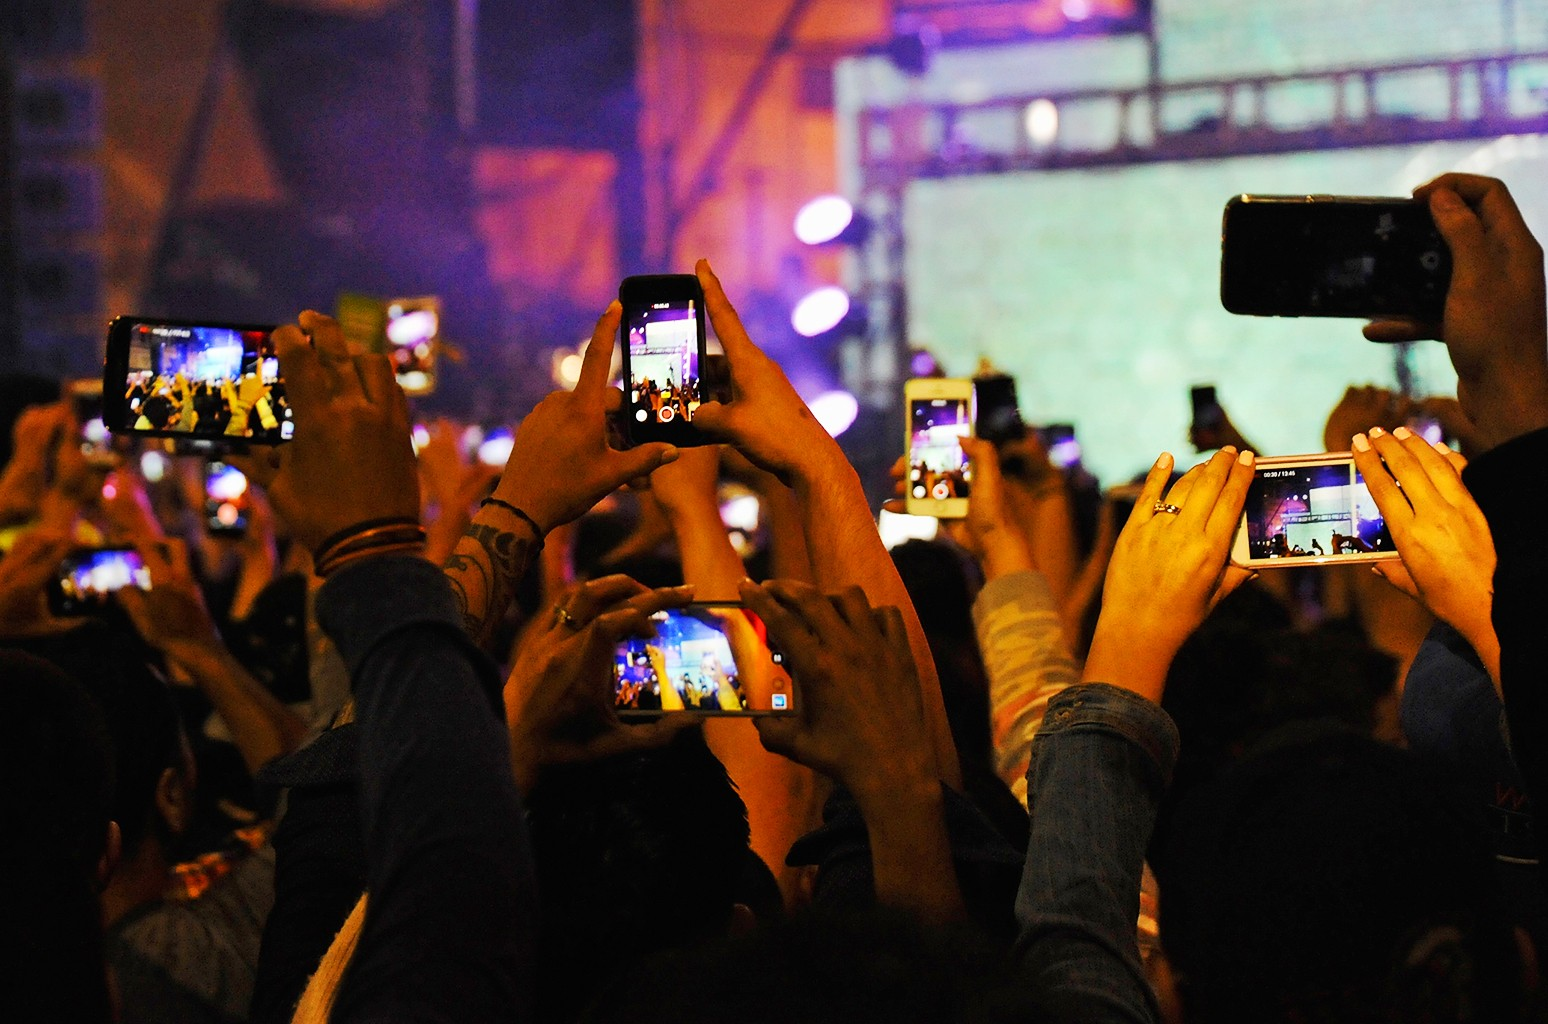 Atmosphere shot of a cluster of cell phones at the 'LAoki' concert in Downtown Los Angeles on May 16, 2015 in Los Angeles.